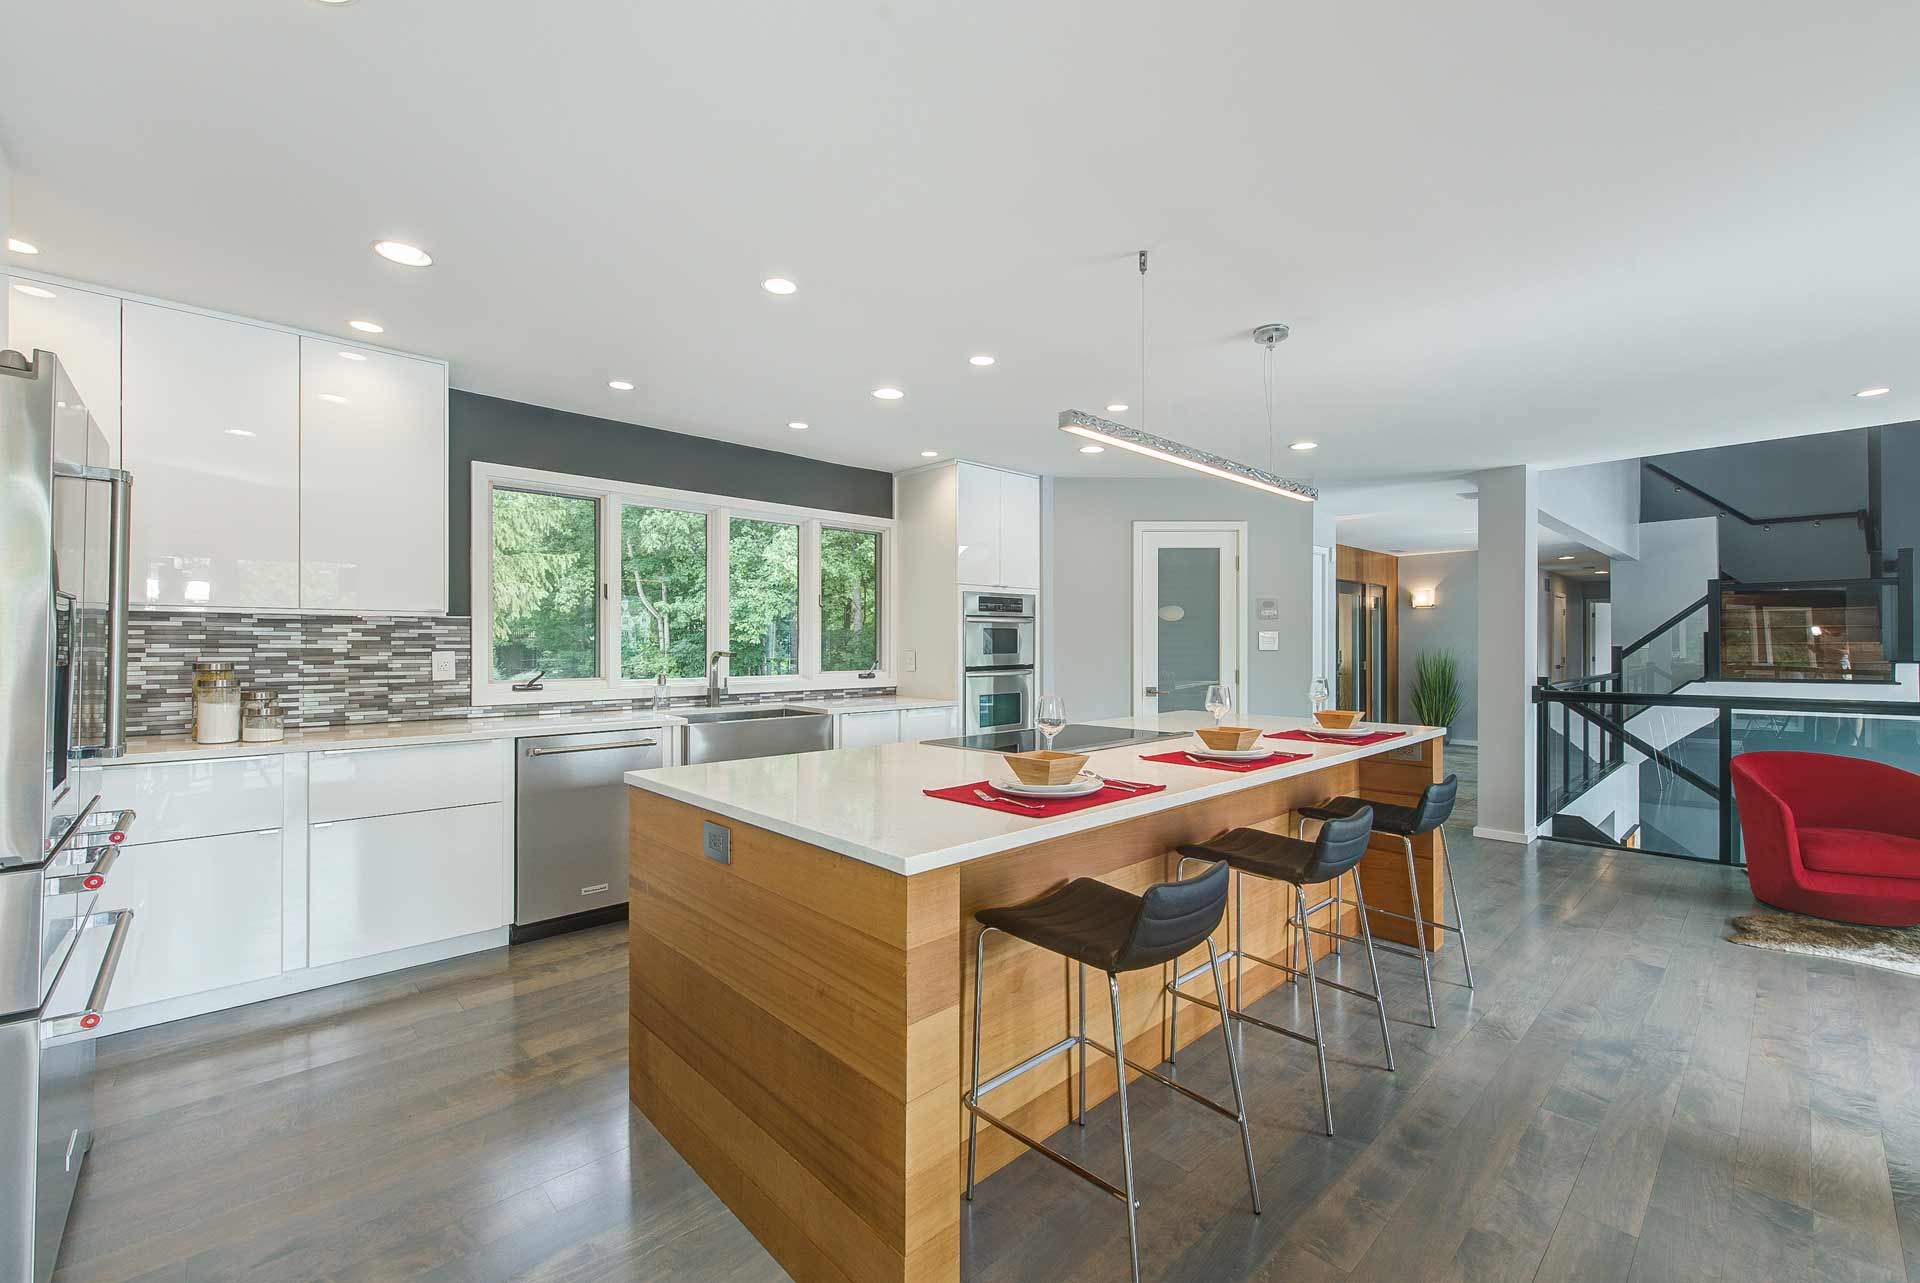 Cedar Wrapped Kitchen Island + White Cabinets and White Quartz Tops - Reef Court Light Renovation - Geist Reservoir - Indianapolis, IN - Red Chair - Photo by Structured Photography